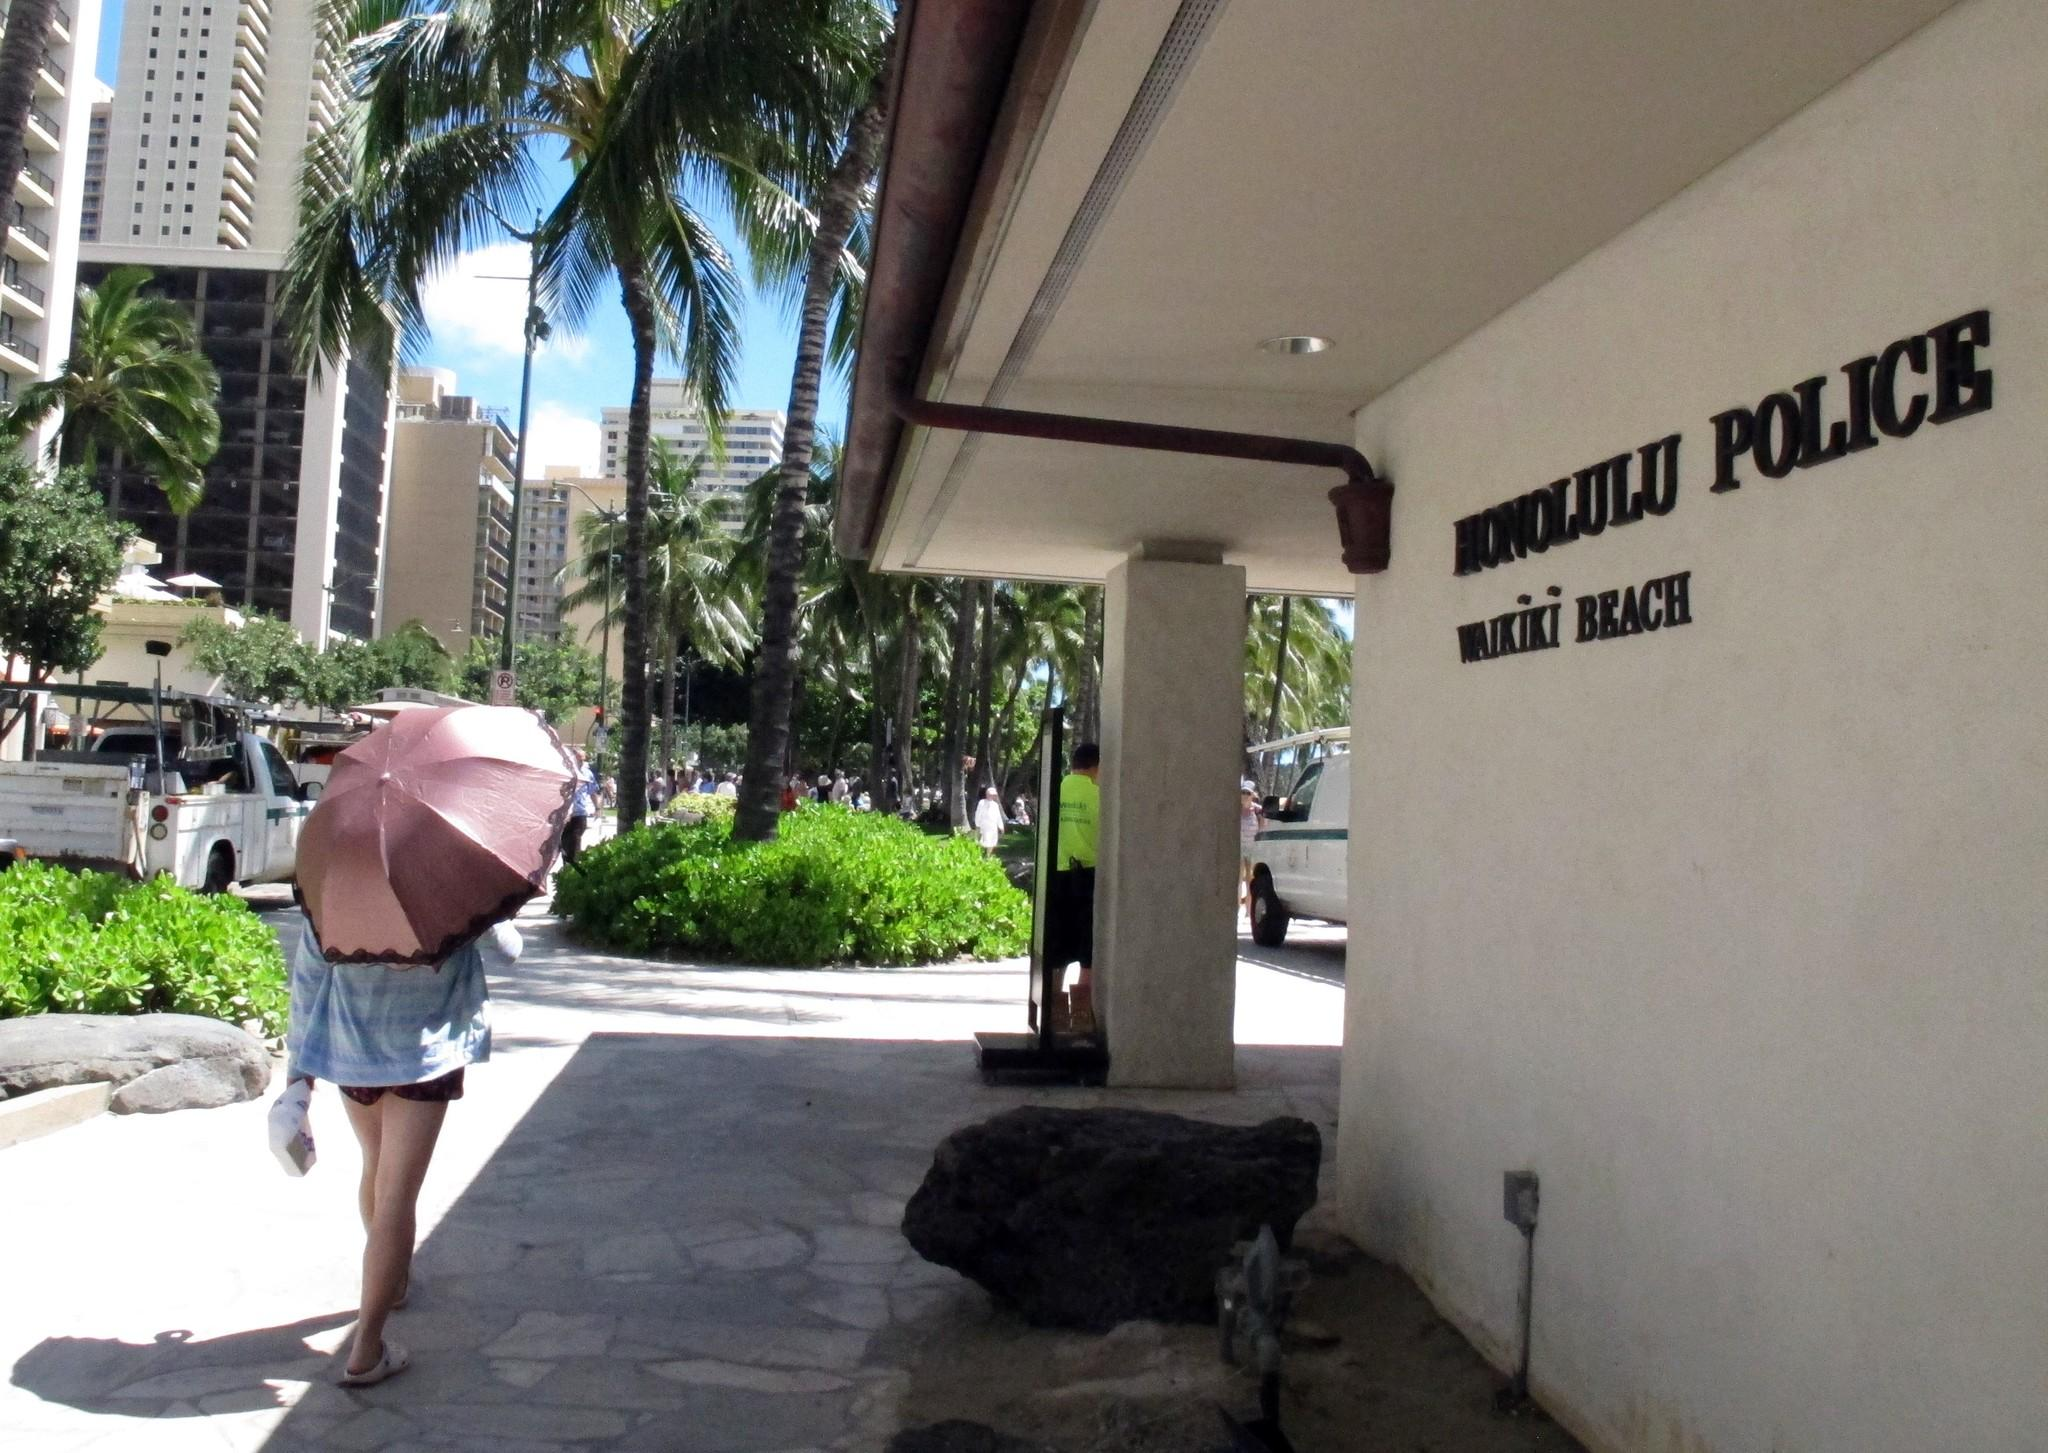 The Honolulu Police Department argued that if undercover police are no longer allowed to have sex with prostitutes, then prostitutes would be able to change their tactics and filter out officers. Above, a pedestrian in front of a Honolulu police station.